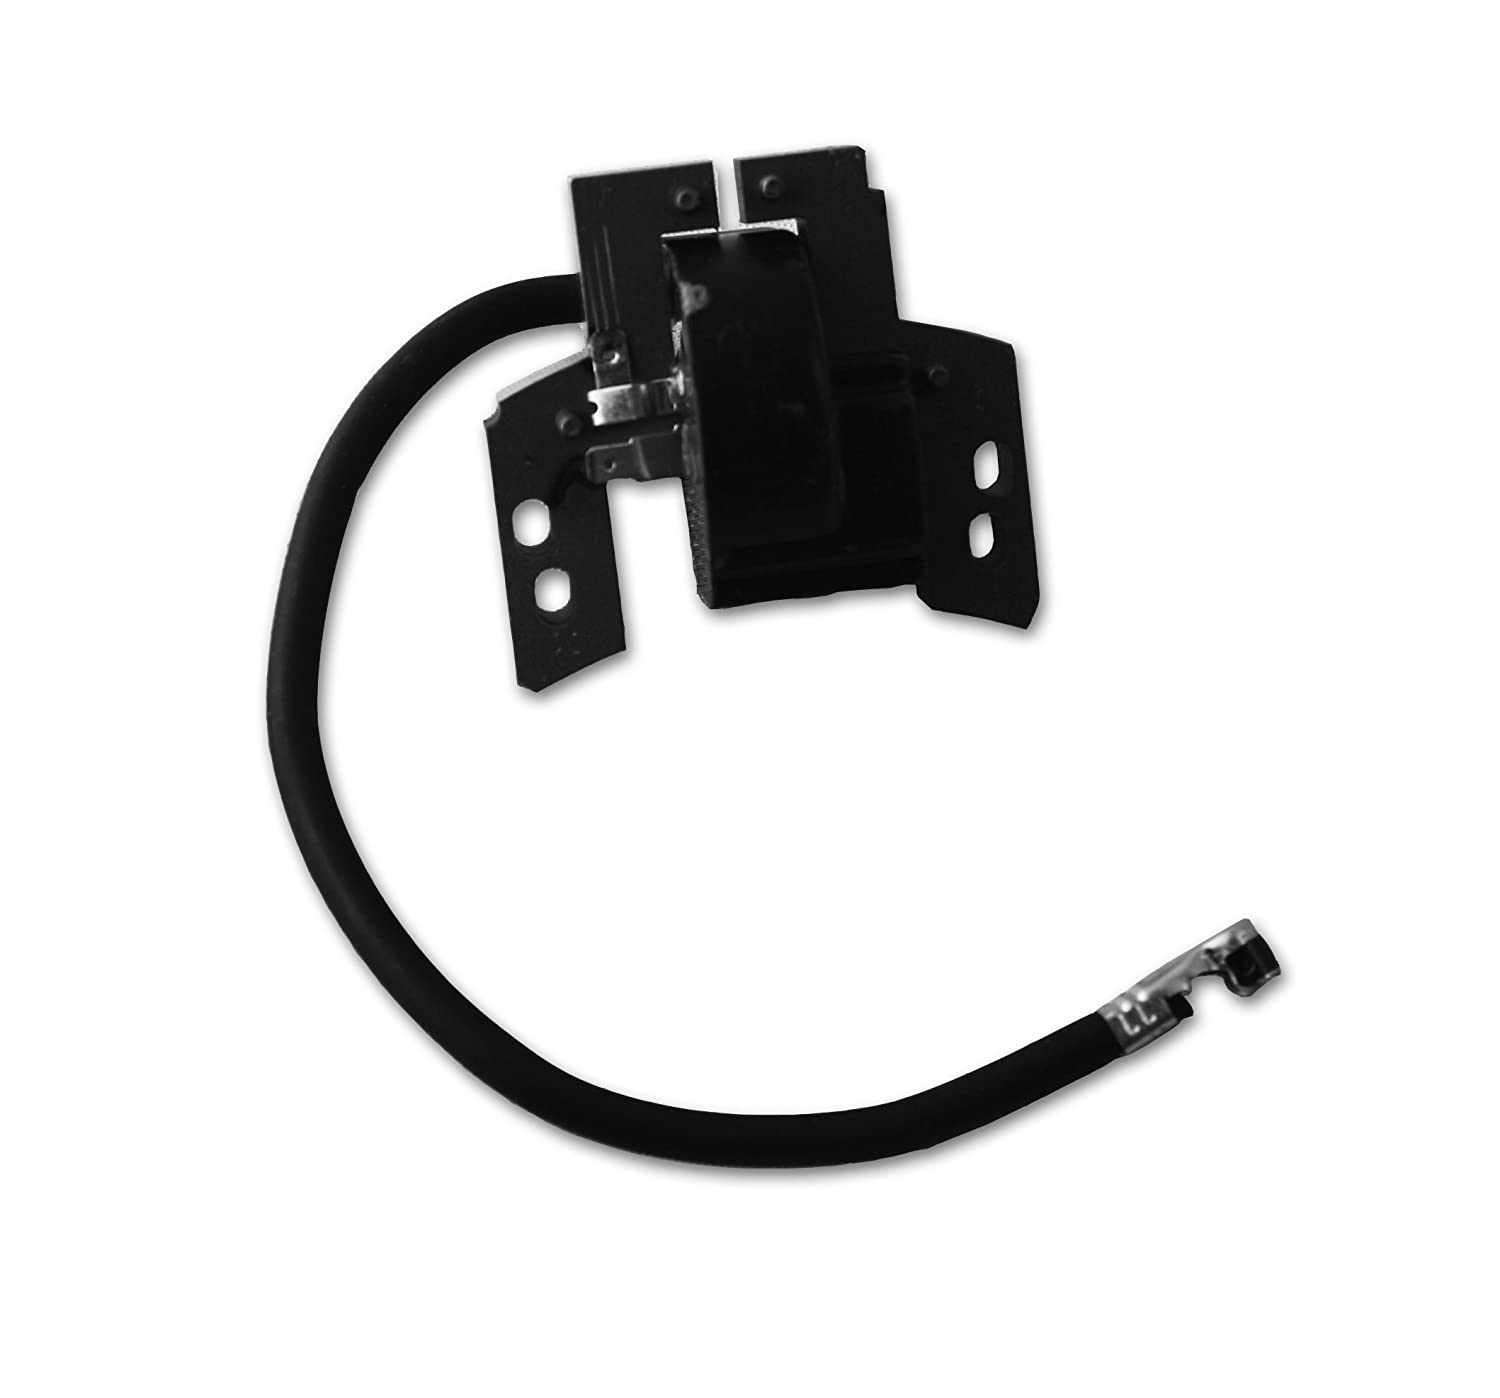 Briggs & Stratton 802574 Ignition Coil For 2-cycle Quantum (12 CID) and Europa (9 CID) Engines